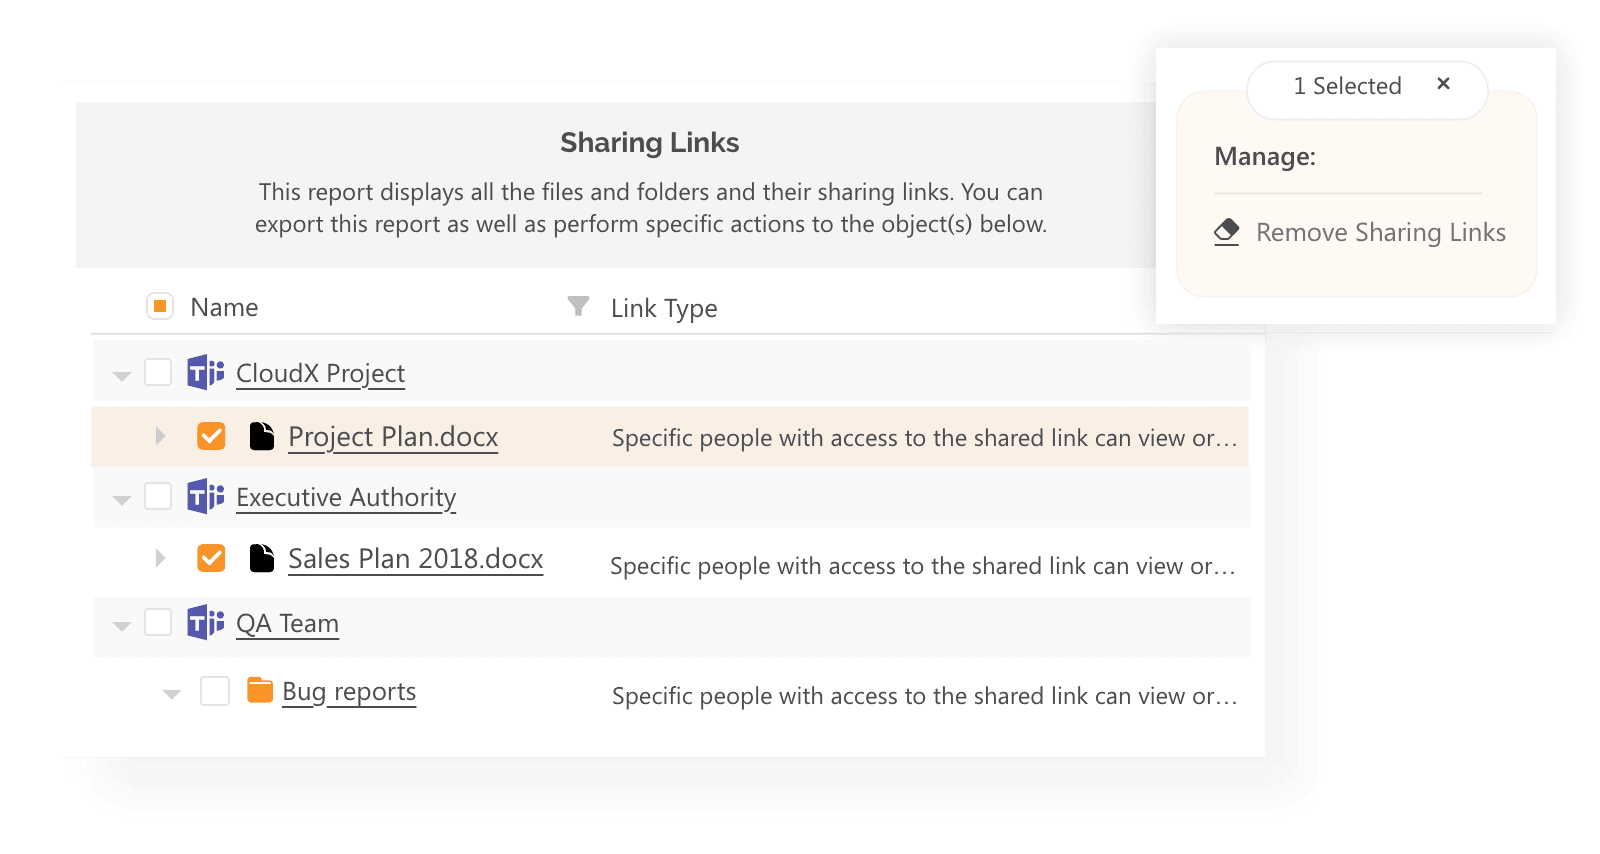 remove sharing links